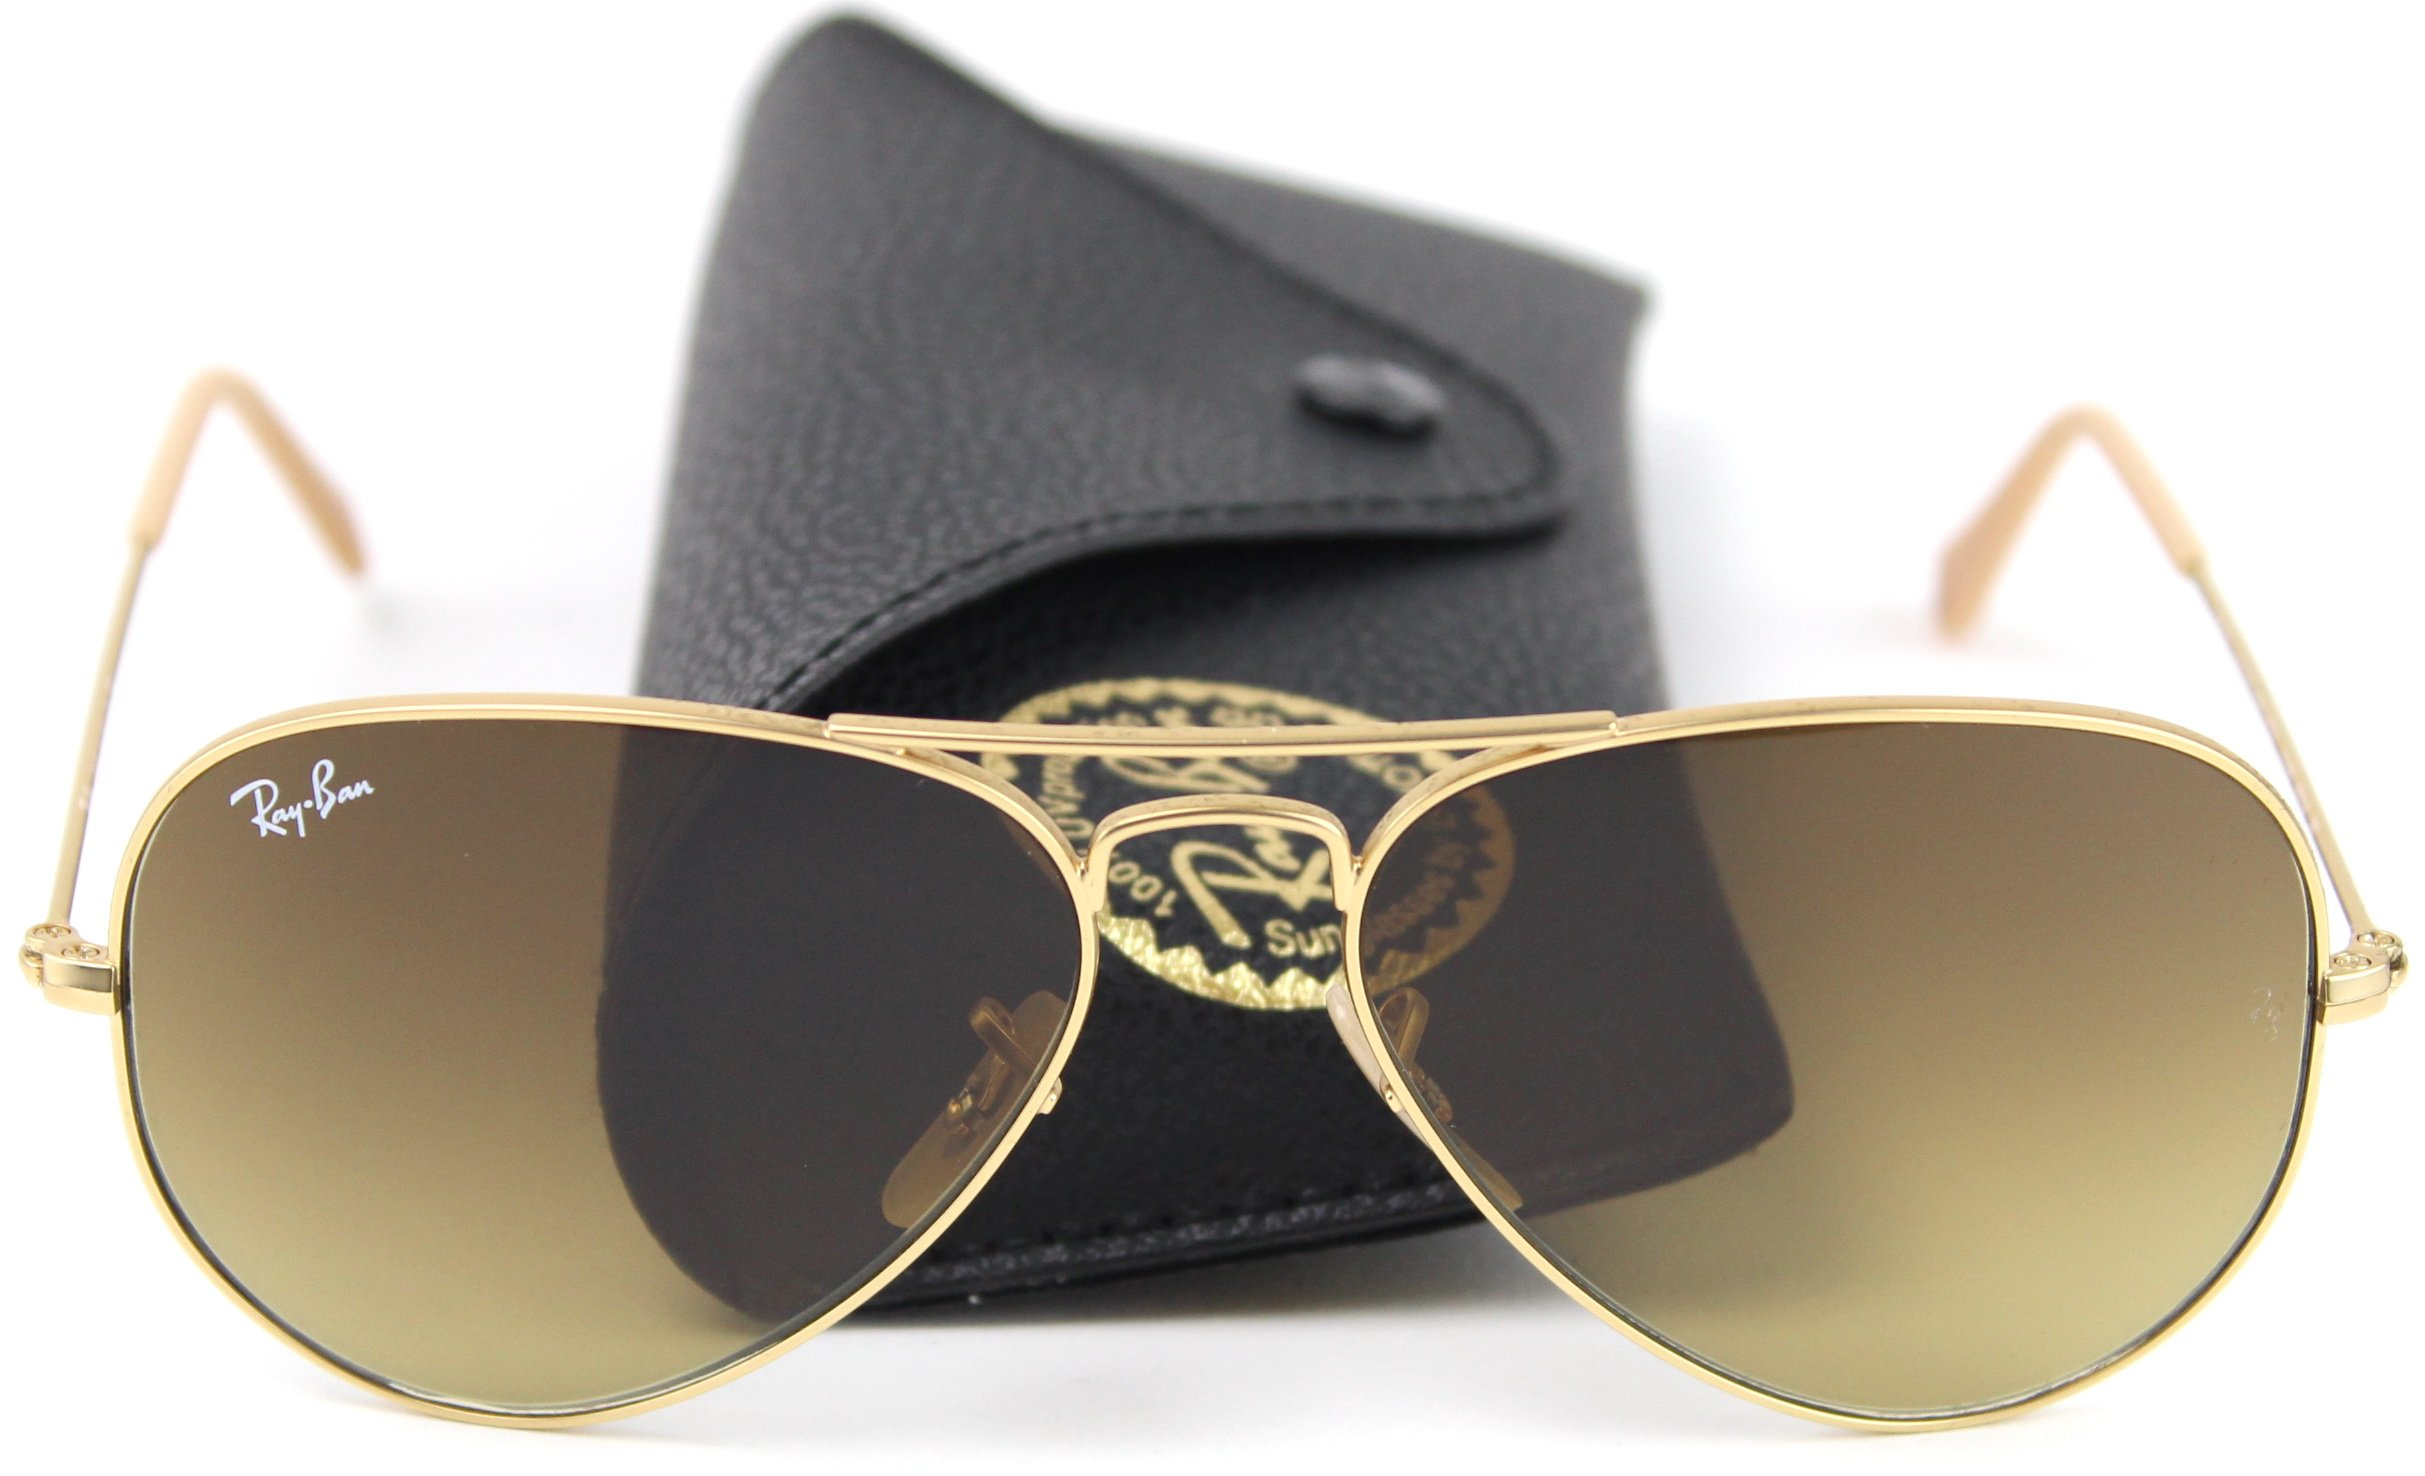 Ray-Ban RB3025 112/85 Sunglasses Gold Frame / Brown Gradient Lens 58mm